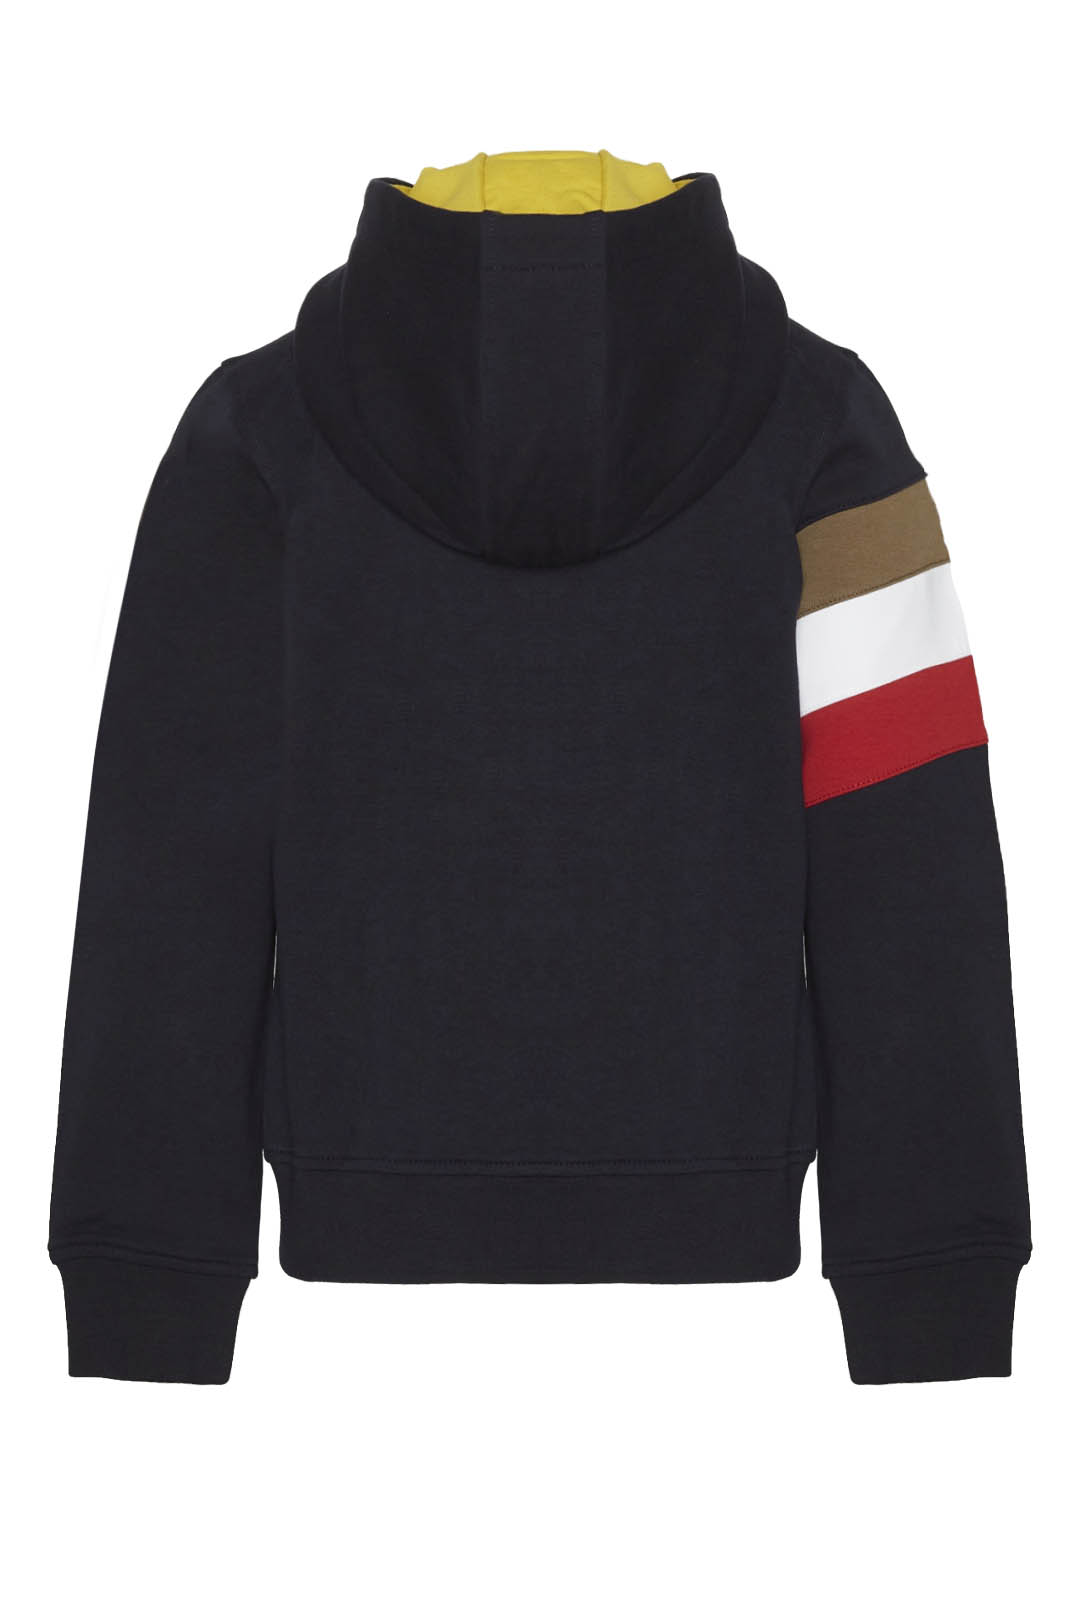 Sweatshirt with tricolor band and hood   2